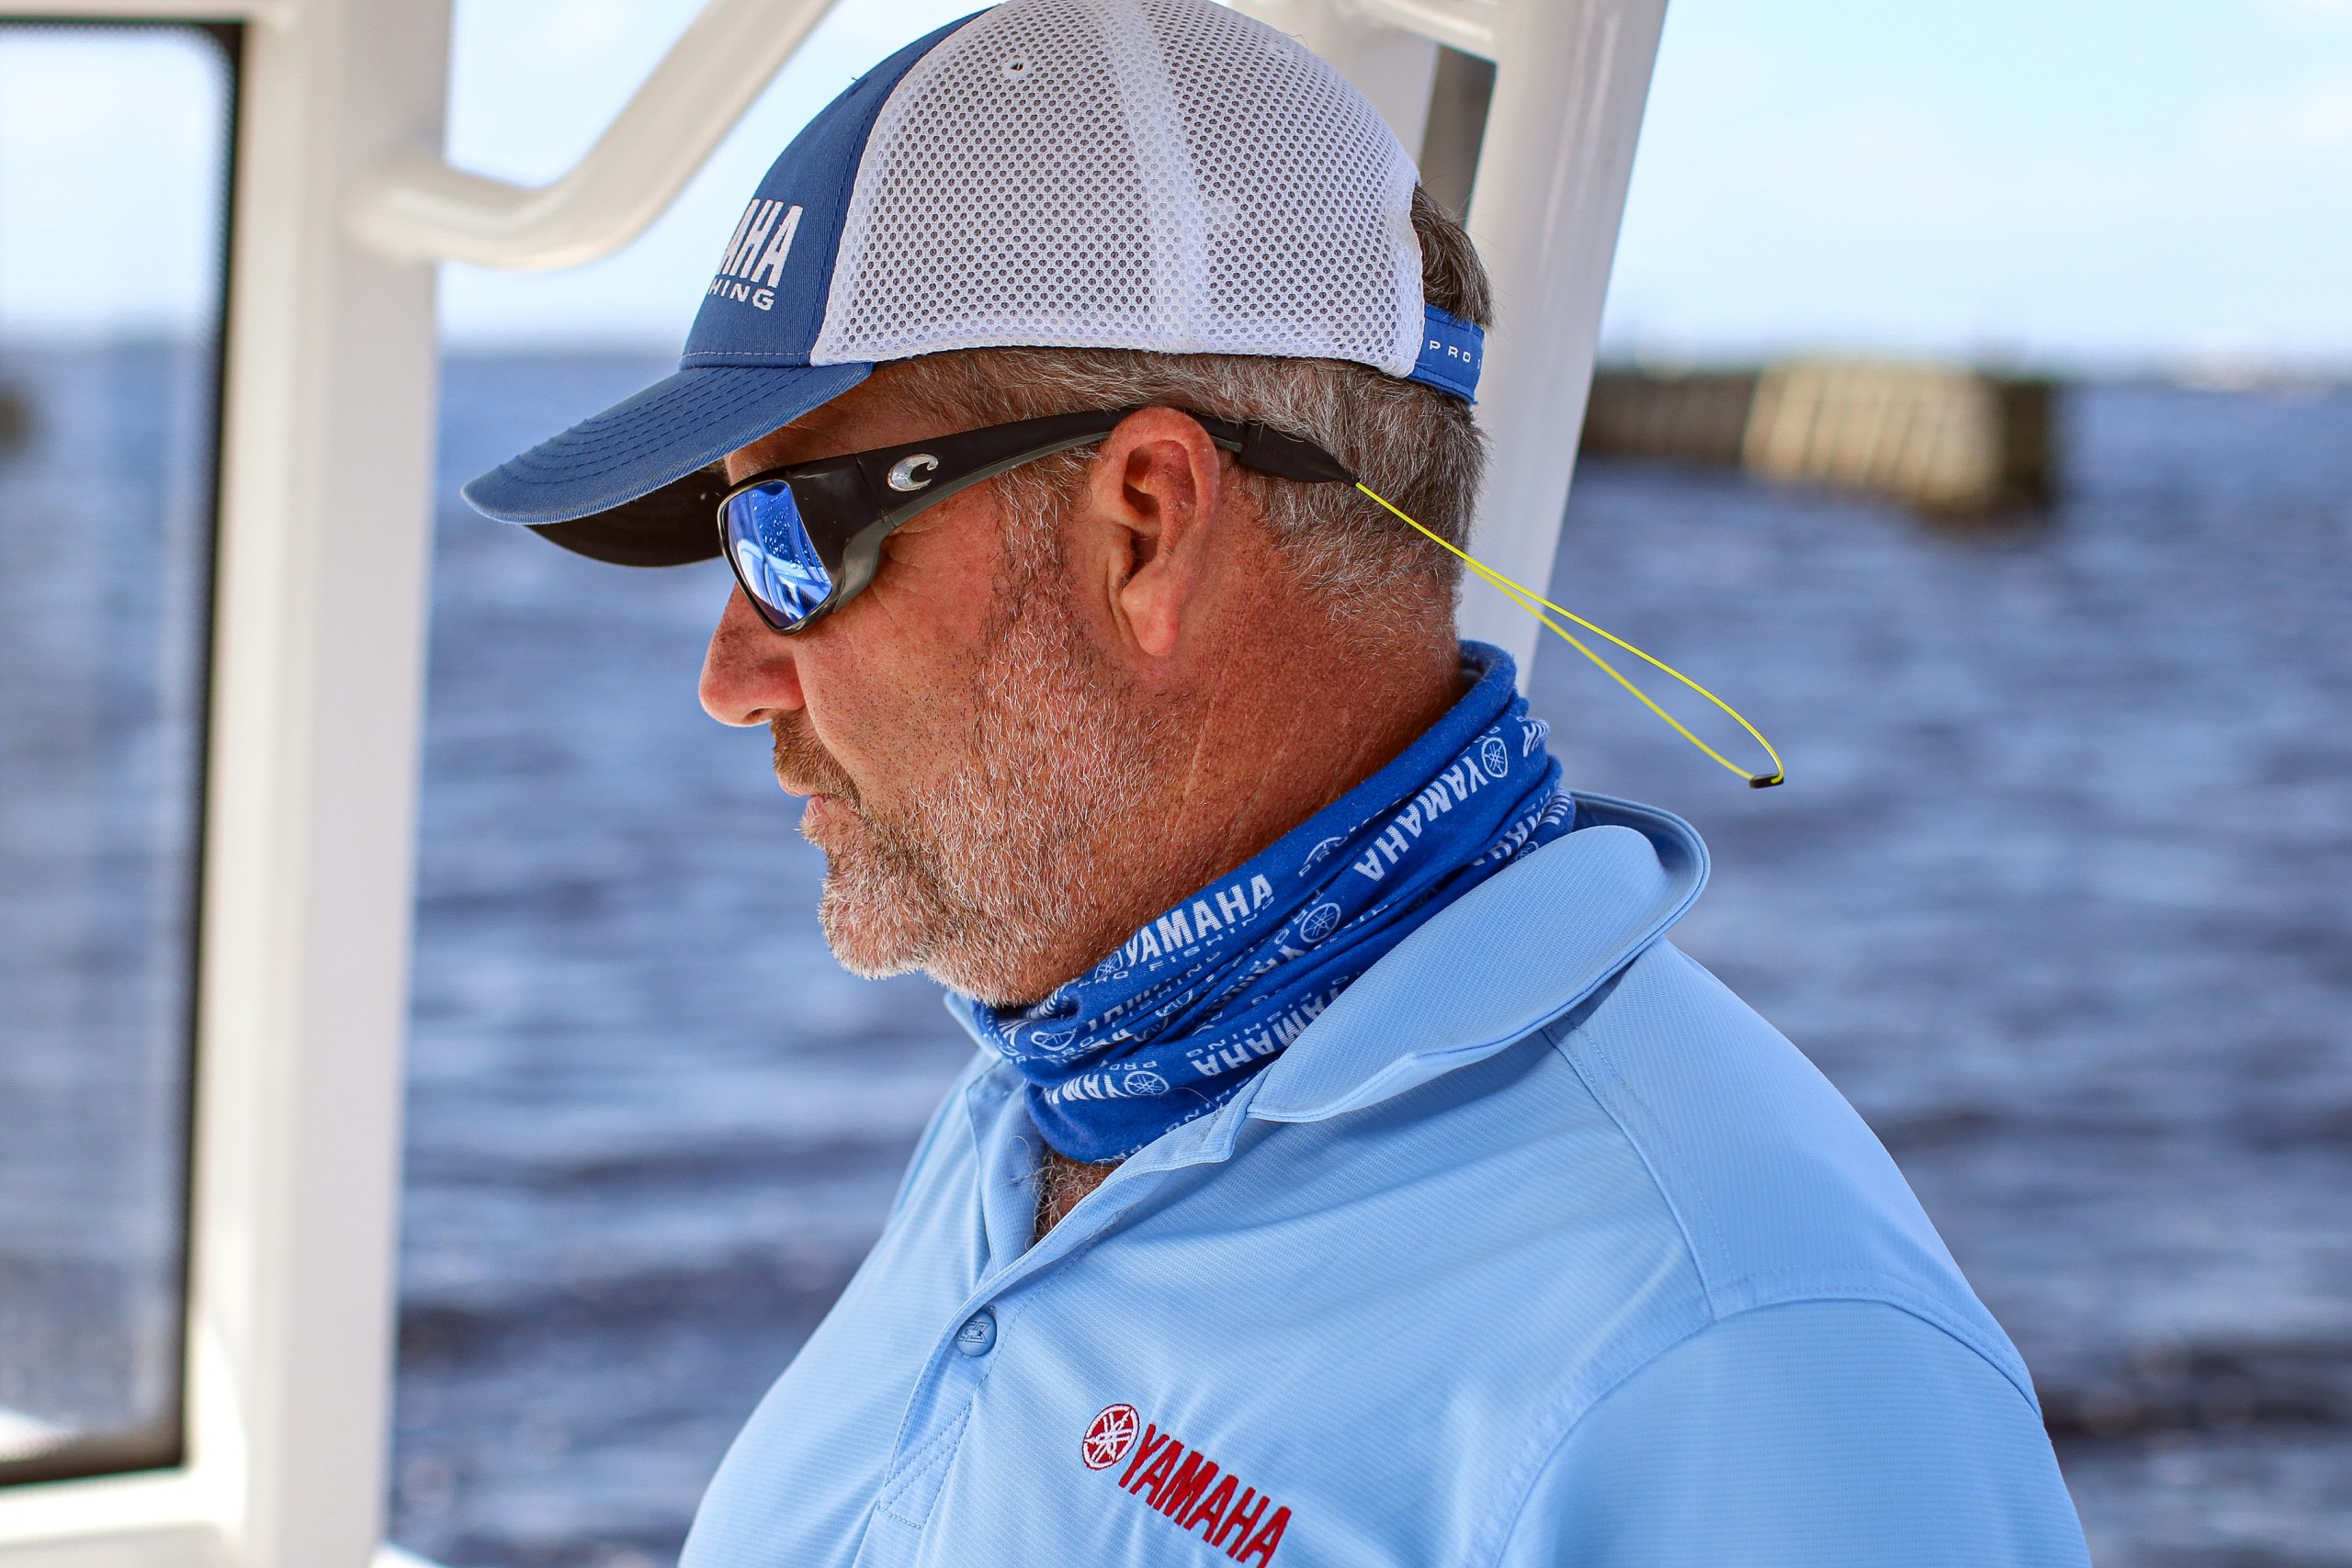 captain sean gill of yamaha pro staff